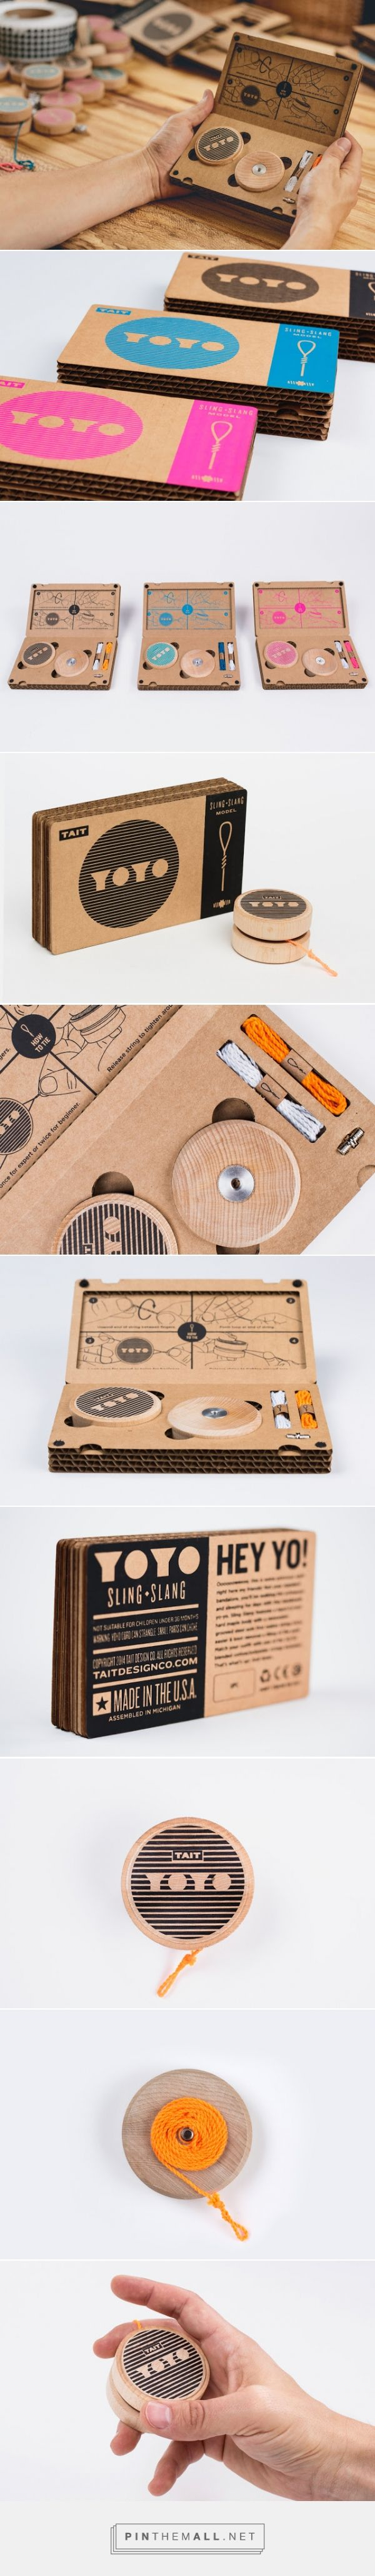 Sling-Slang YOYO Designed by TAIT Design Co. Image Credit: Aaron Jones  Video Credit: Gentlemen Project Type: Produced, Commercial Work  Location, Detroit, USA Packaging Materials: Cardboard, Velcro